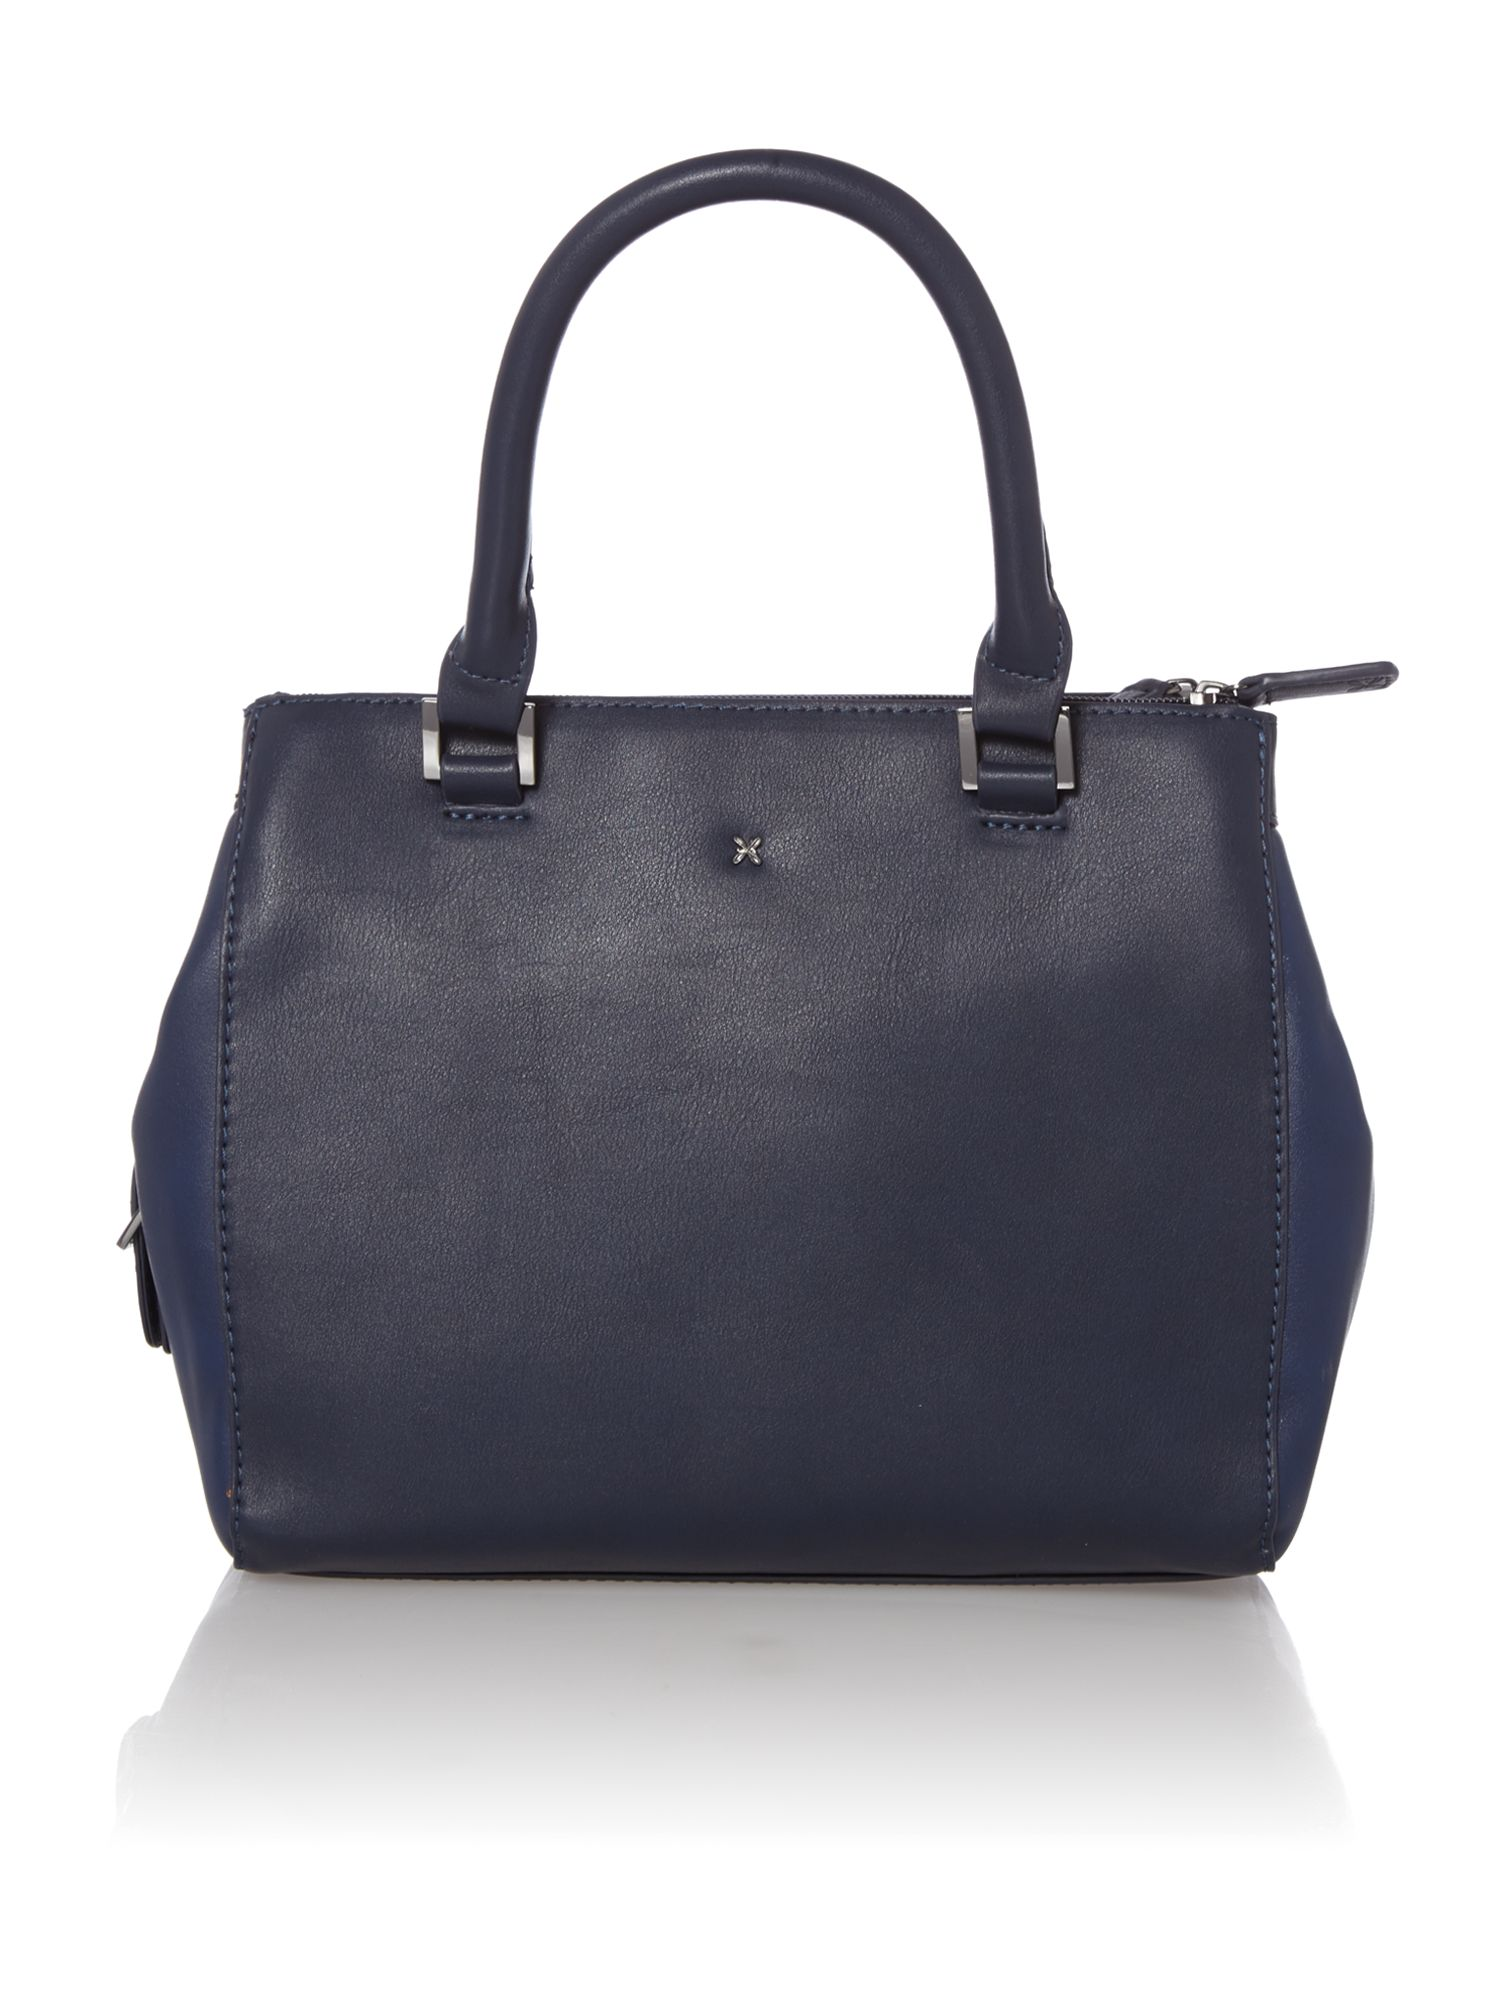 Mia navy small cross body tote bag